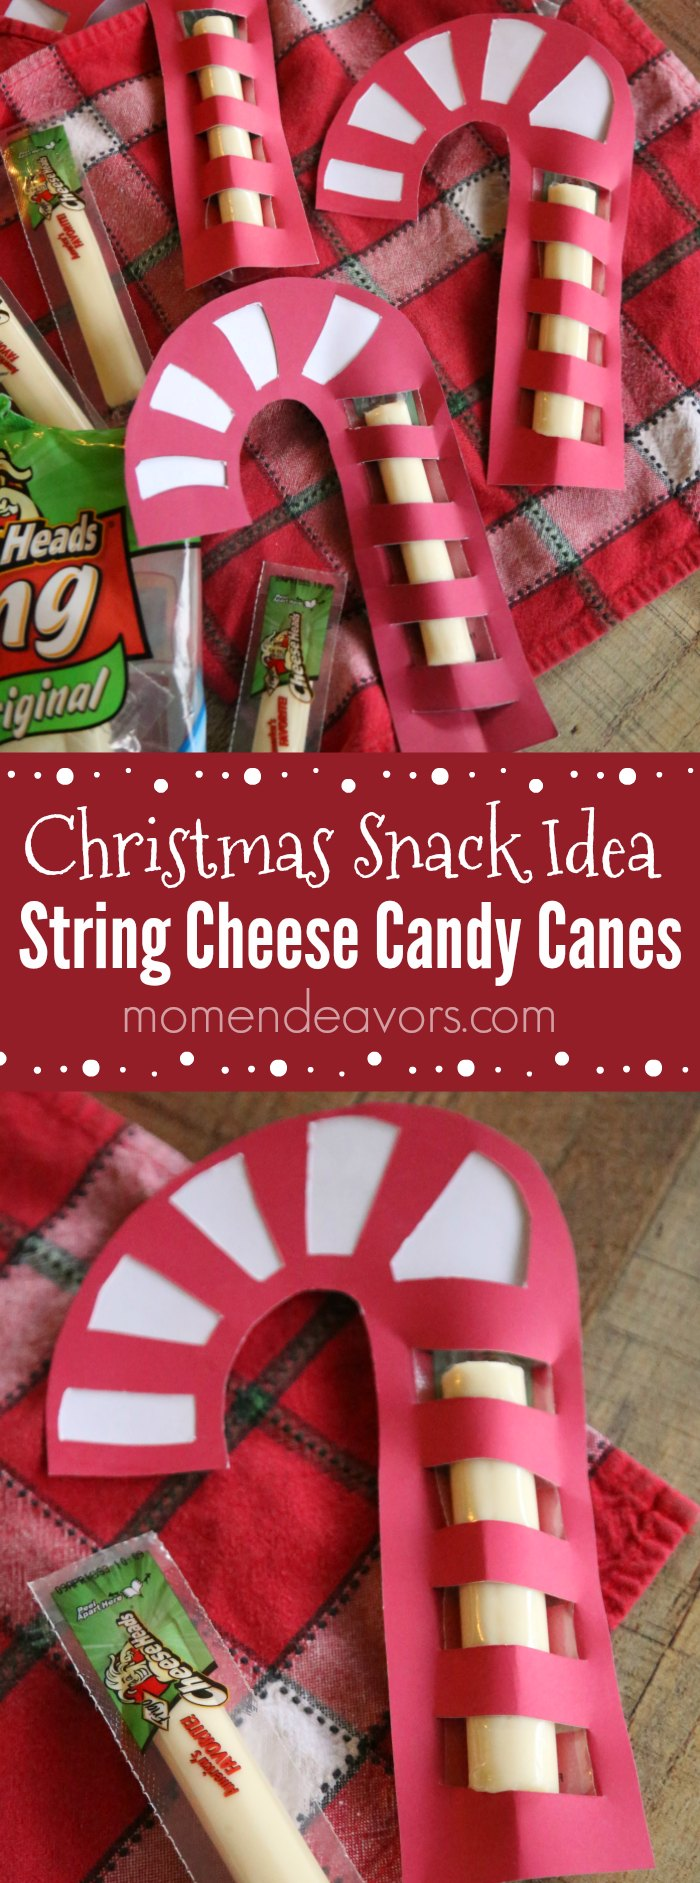 Healthy Christmas Snack String Cheese Candy Cane